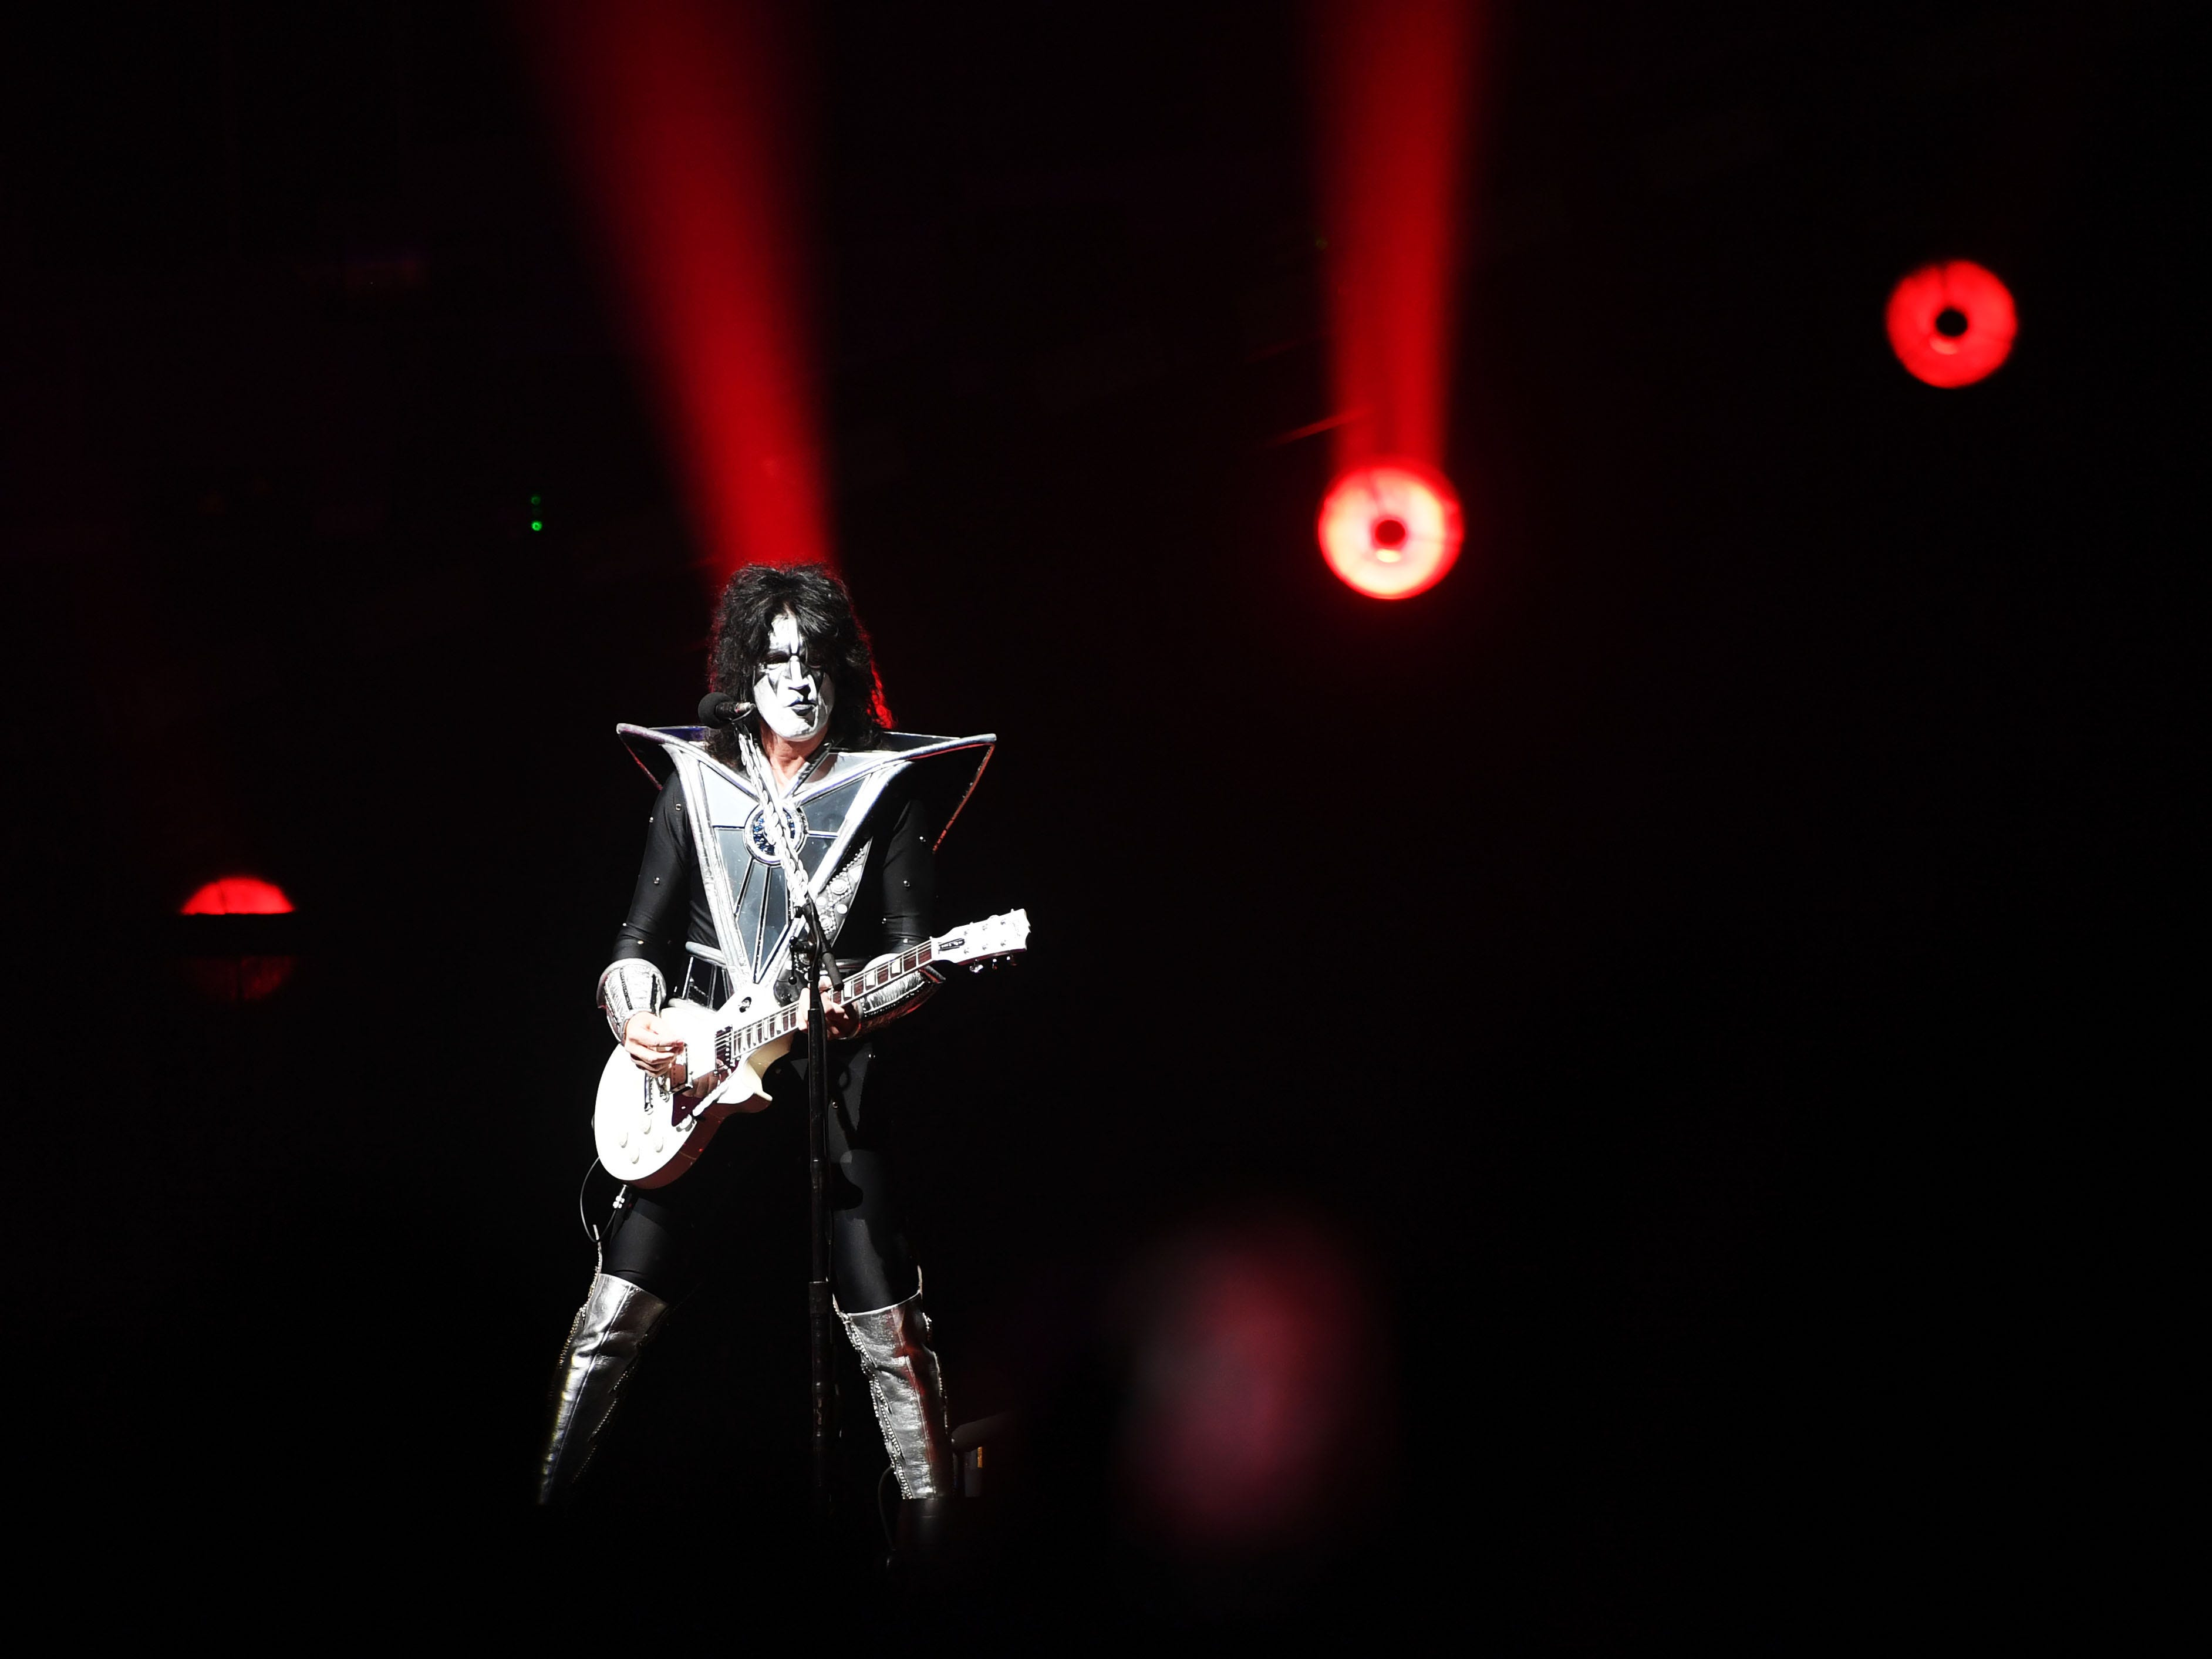 KISS guitarist Tommy Thayer performs during the KISS End of the Road World Tour Wednesday, March 6, at the Denny Sanford Premier Center in Sioux Falls. The line up included lead vocalist Paul Stanley, bassist Gene Simmons, guitarist Tommy Thayer and drummer Eric Singer.